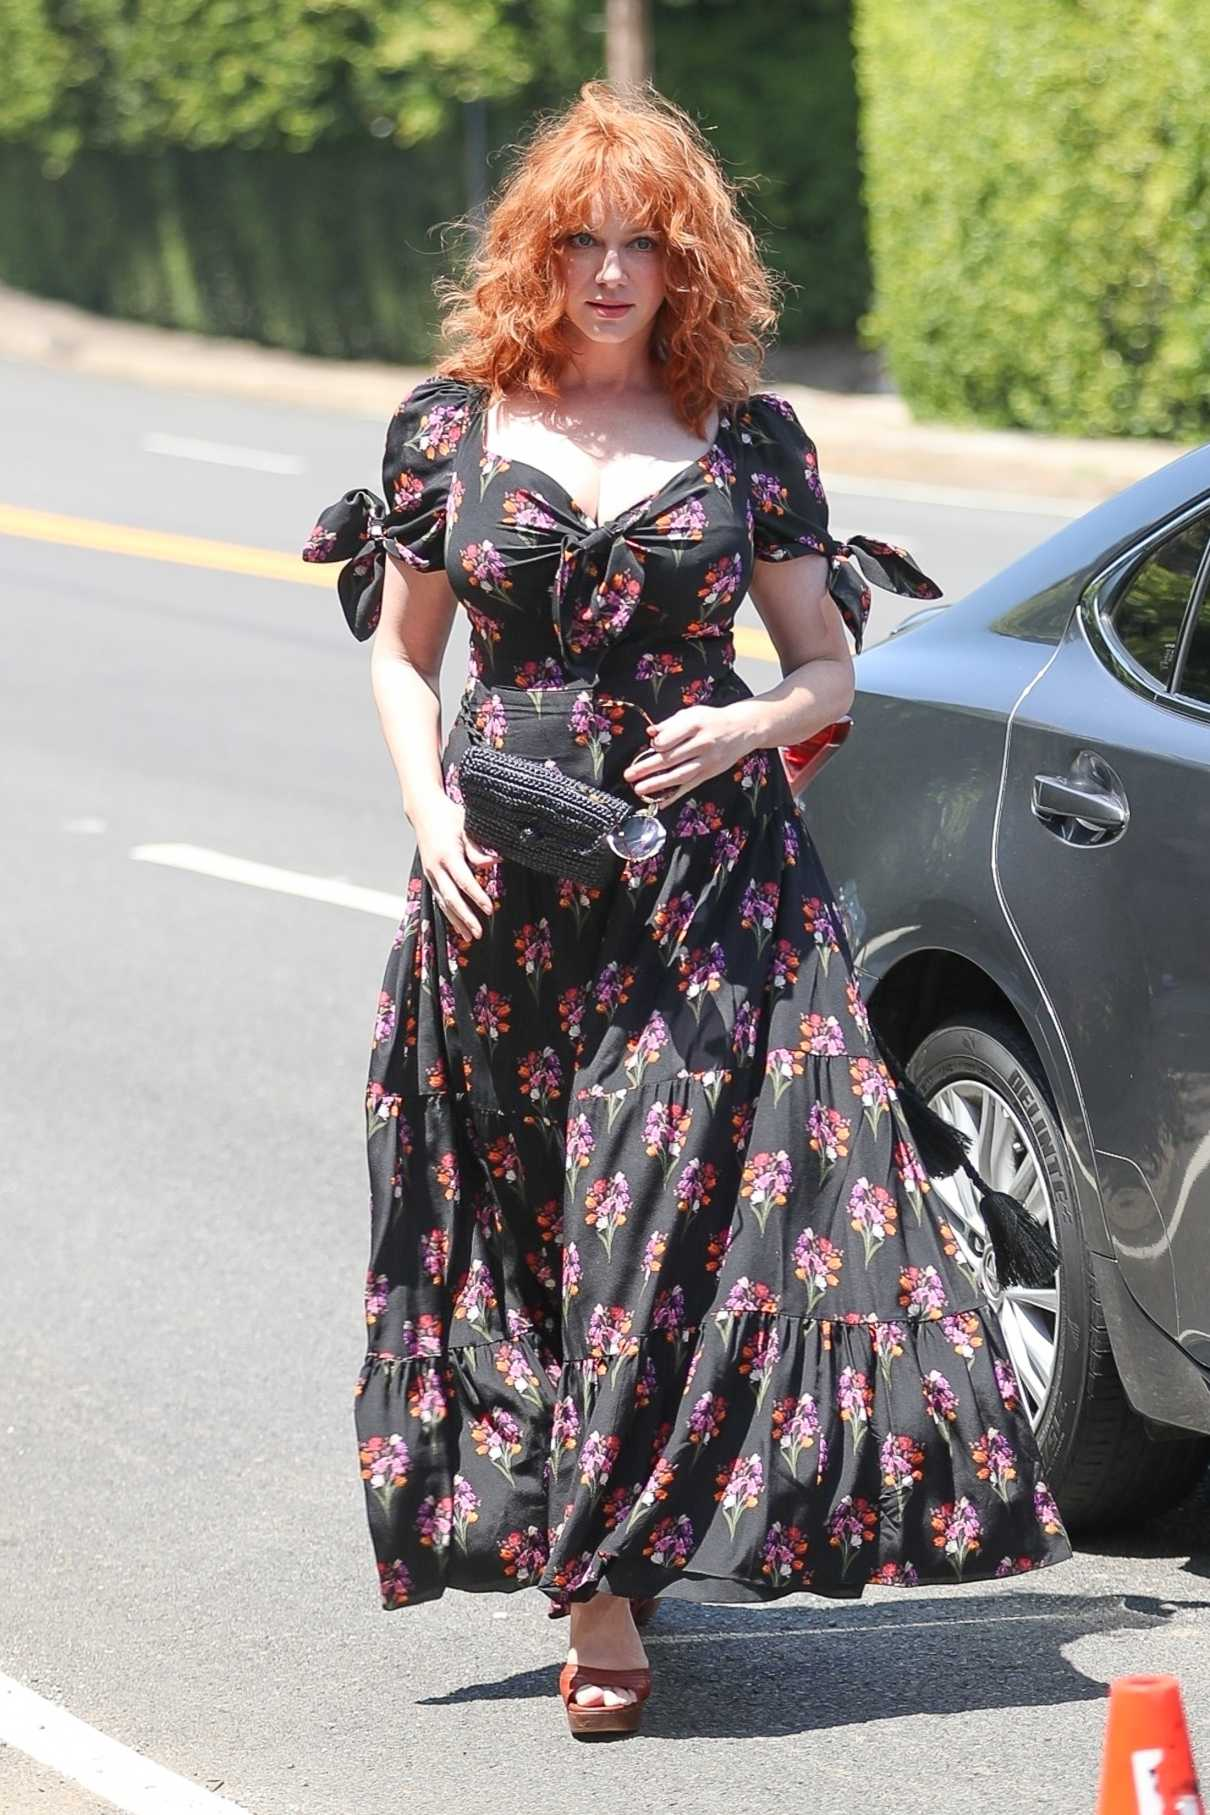 Christina Hendricks in a Black Floral Dress